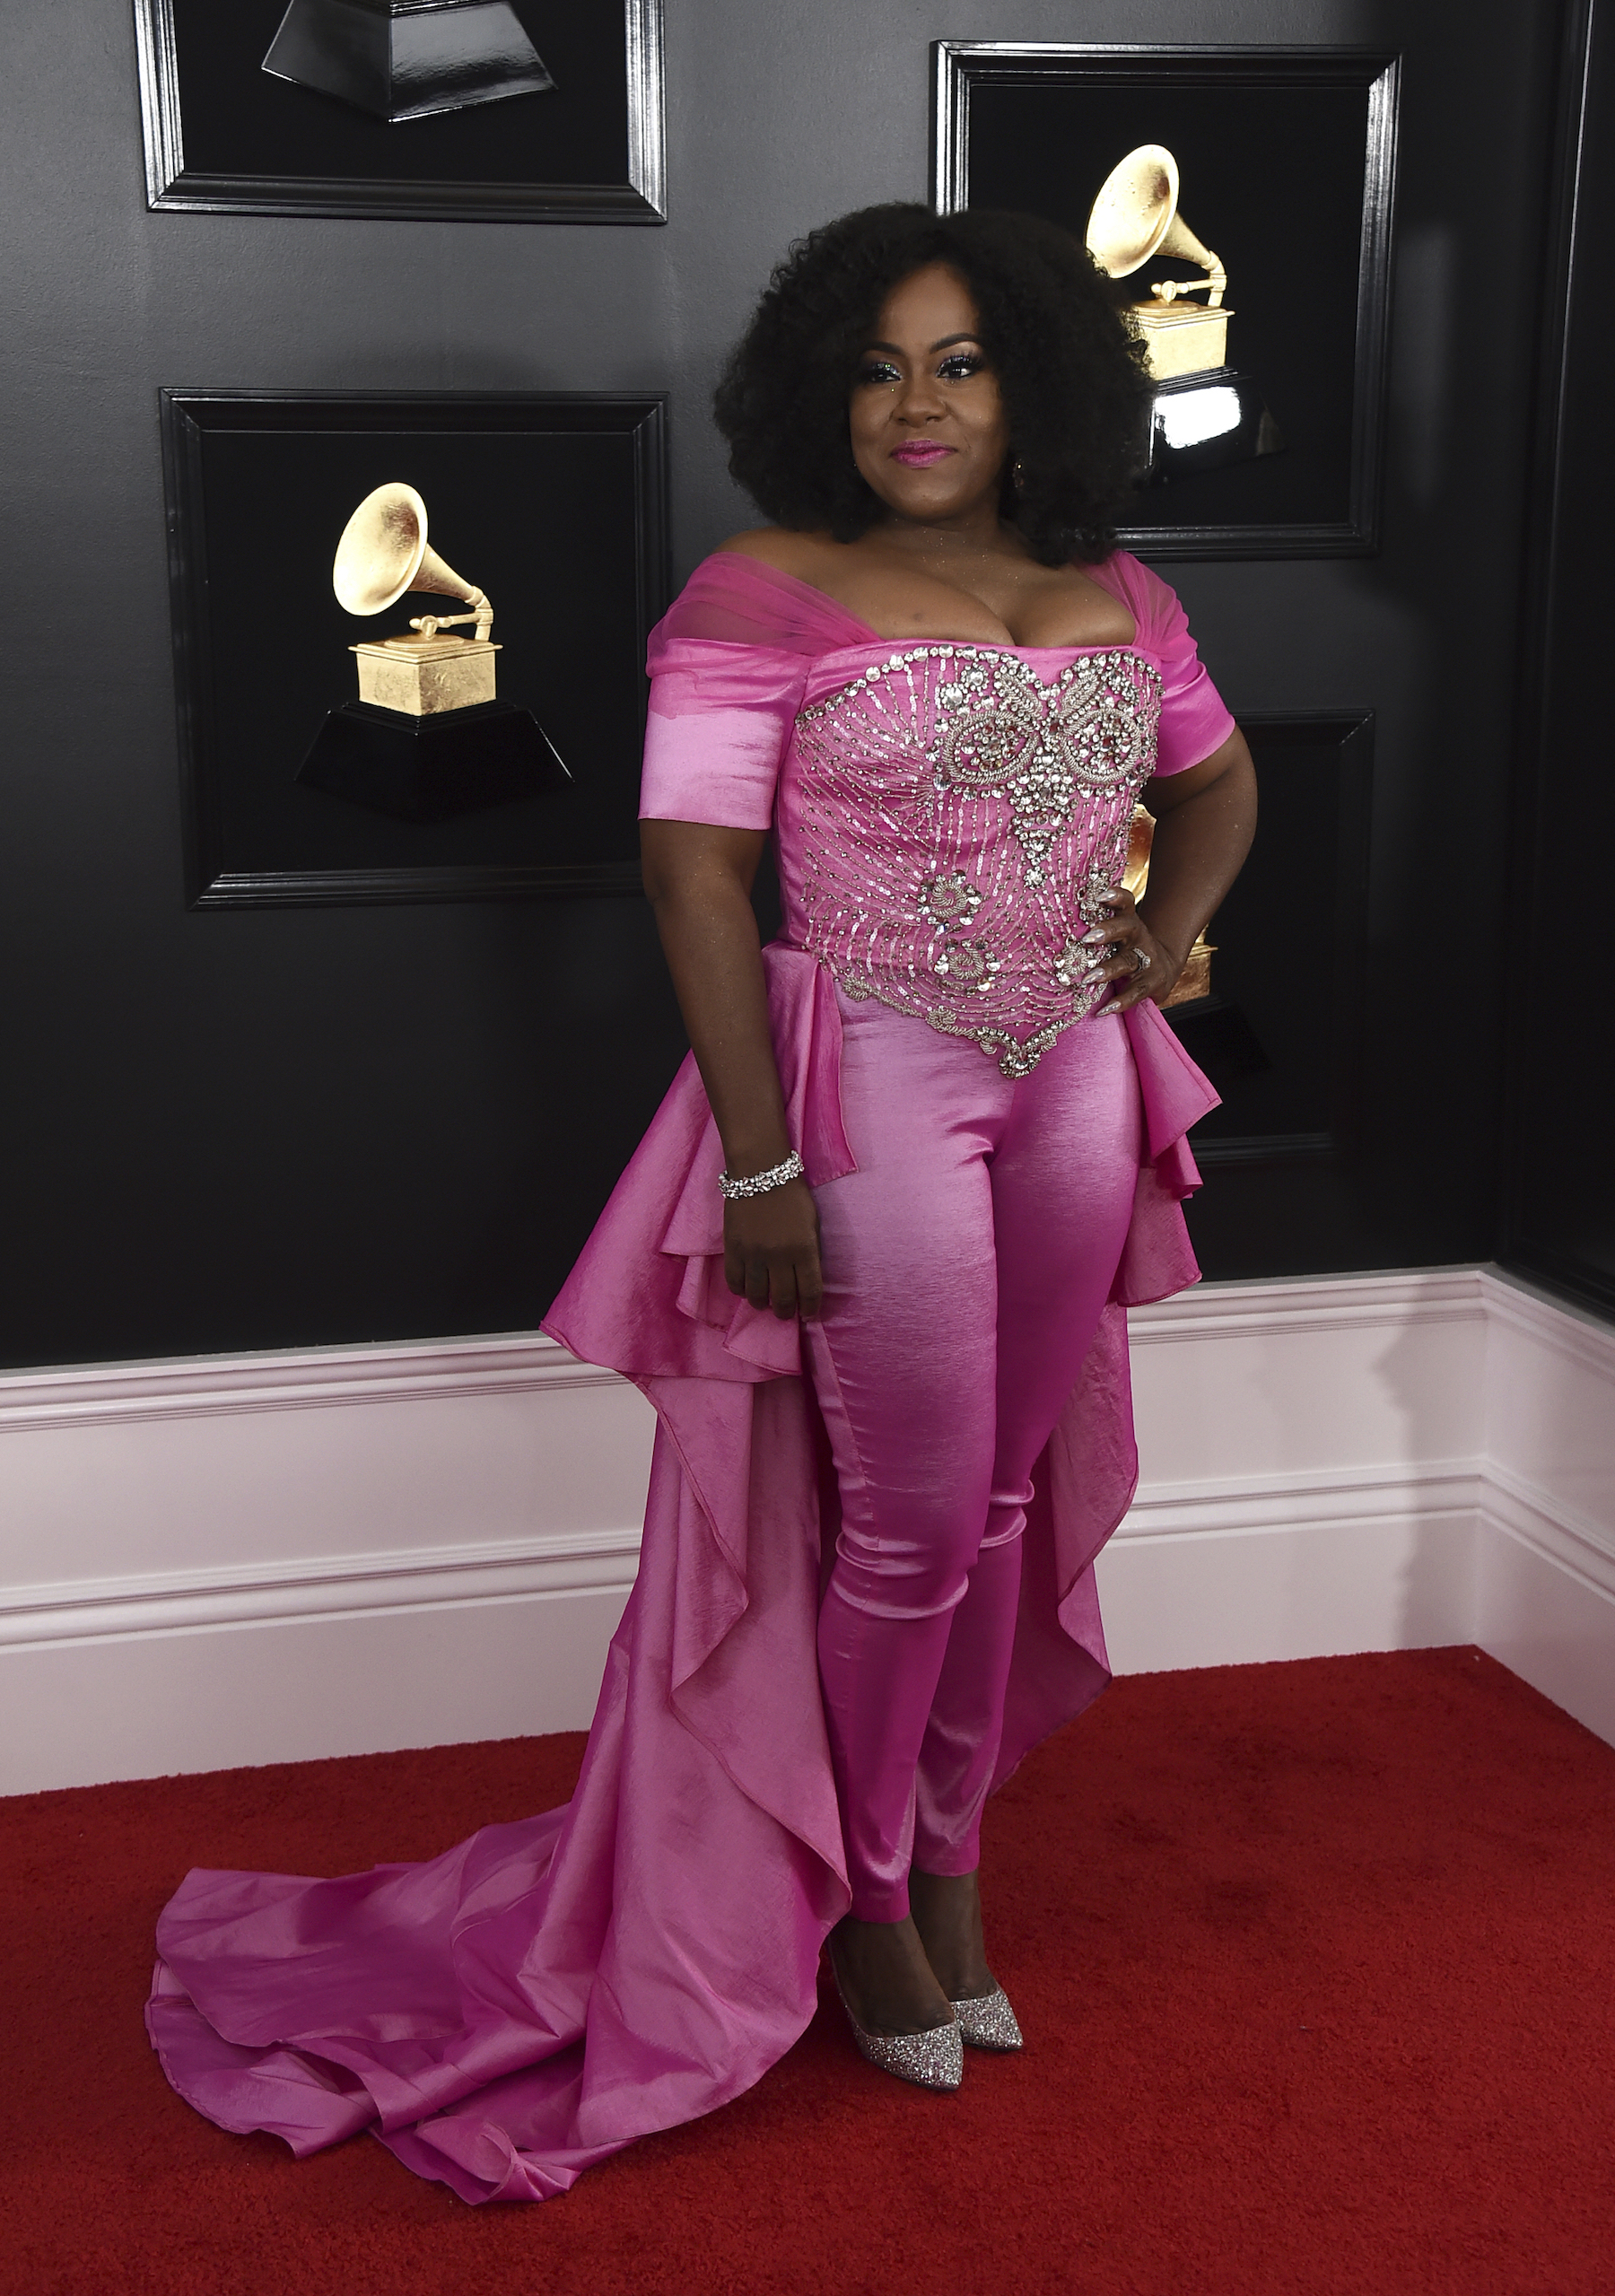 "<div class=""meta image-caption""><div class=""origin-logo origin-image ap""><span>AP</span></div><span class=""caption-text"">Etana arrives at the 61st annual Grammy Awards at the Staples Center on Sunday, Feb. 10, 2019, in Los Angeles. (Jordan Strauss/Invision/AP)</span></div>"